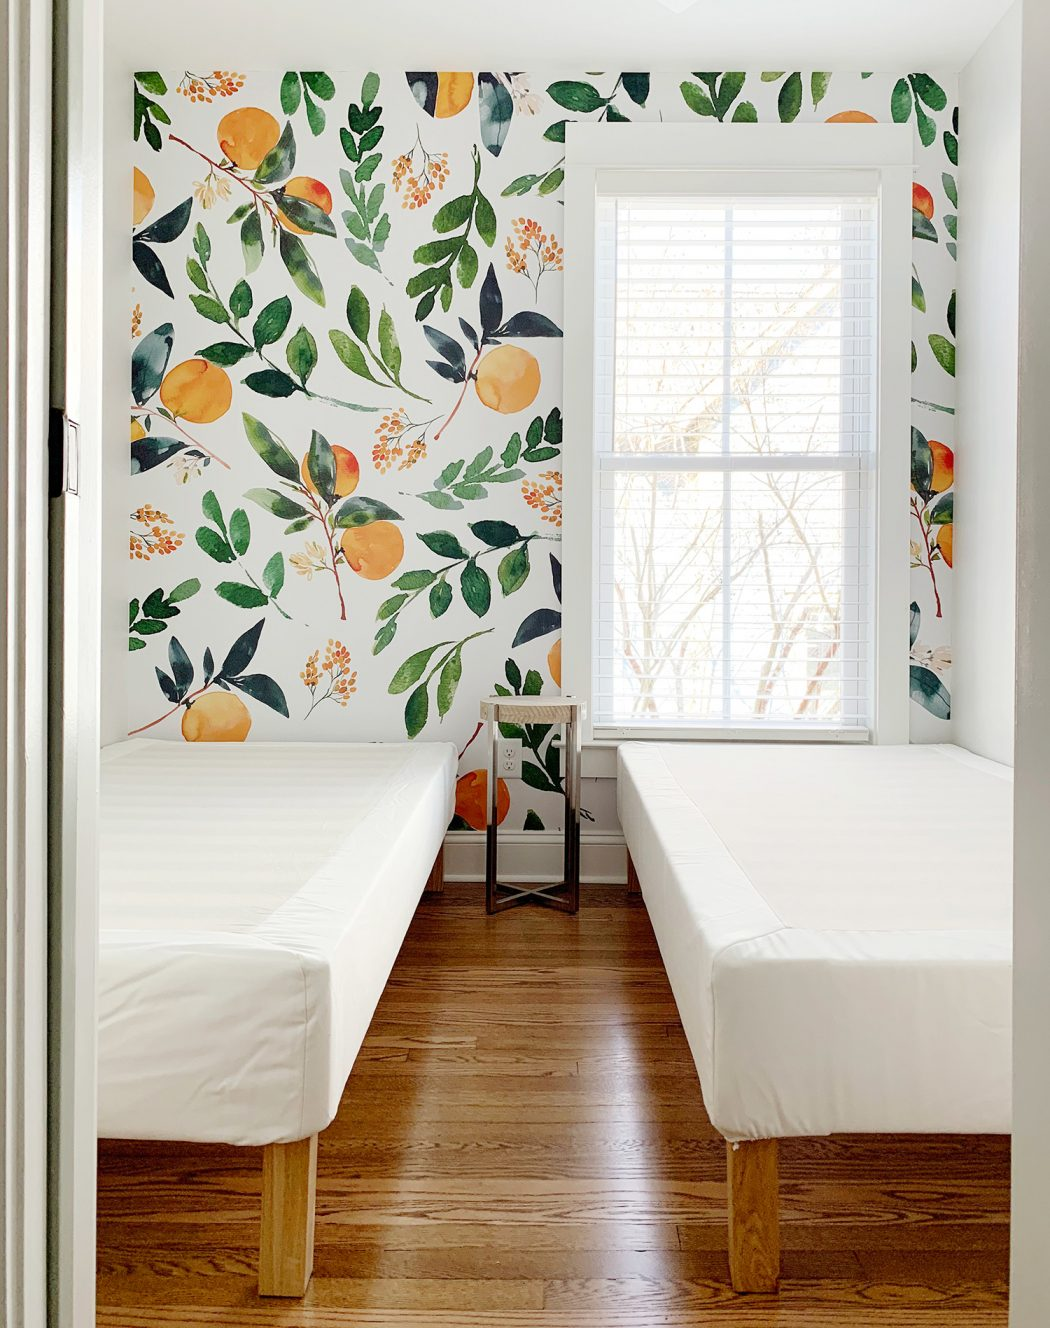 Society 6 wallpaper mural instructions via Young House Love